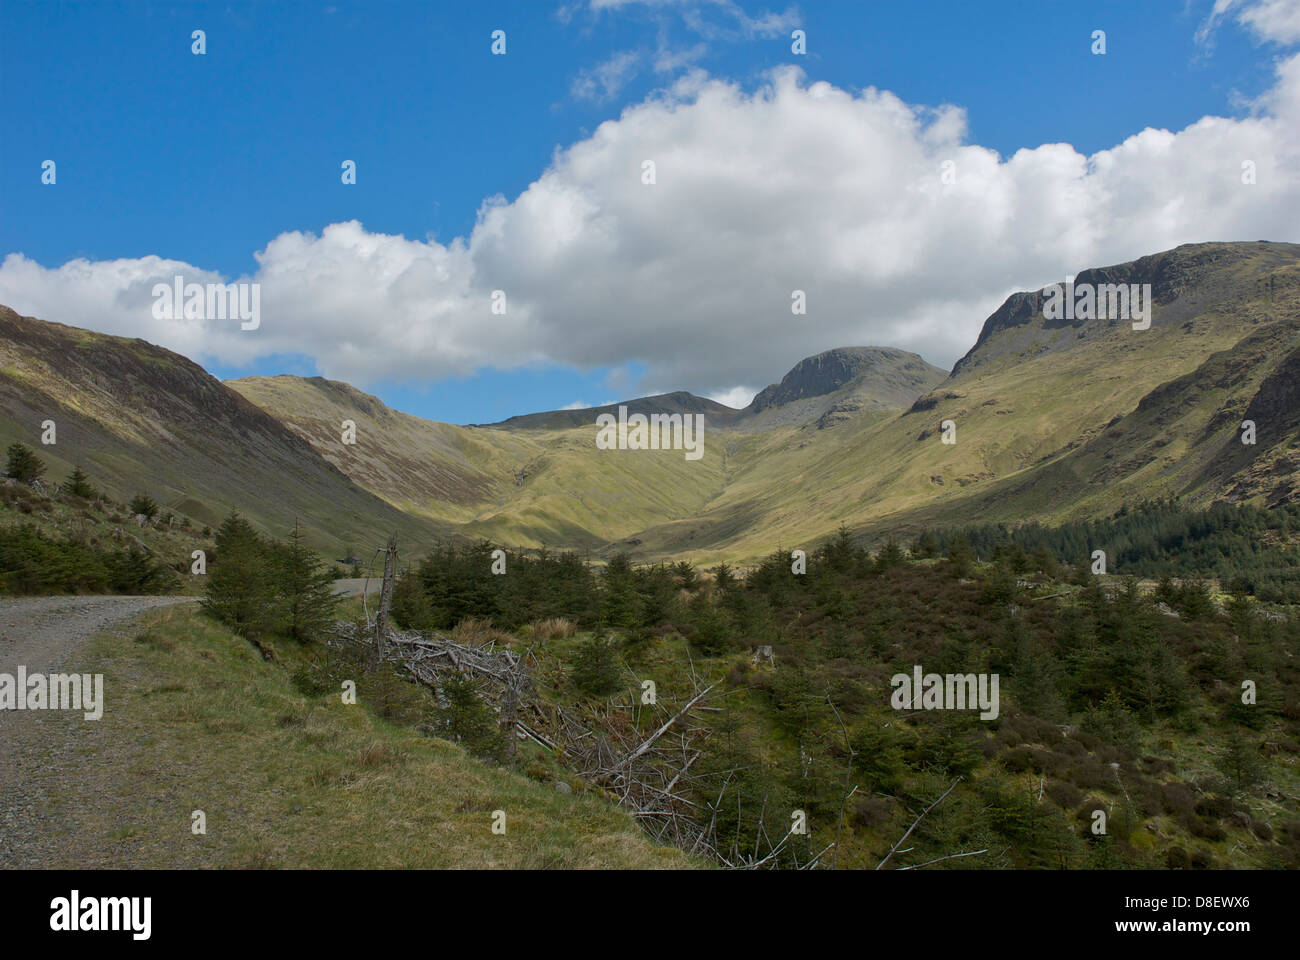 The head of the Ennerdale Valley, looking towards the Black Sail hut, Lake District National Park, Cumbria, England Stock Photo